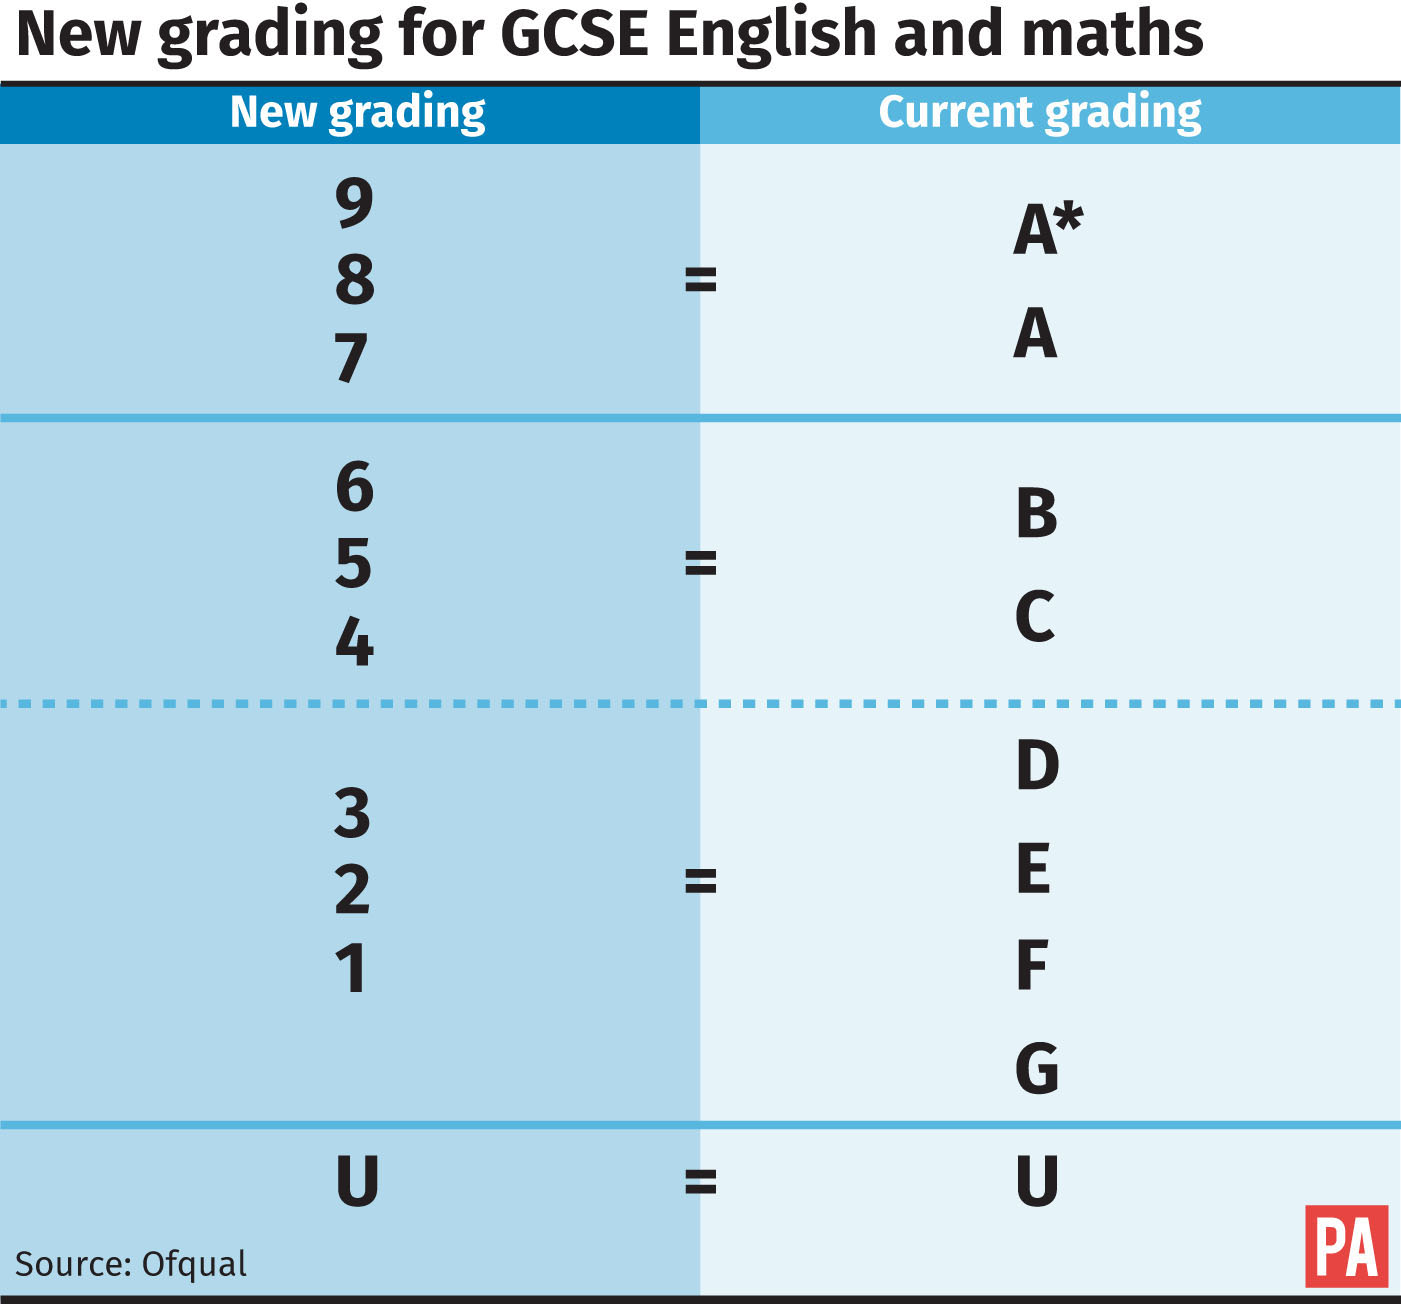 The new grading system for GCSEs